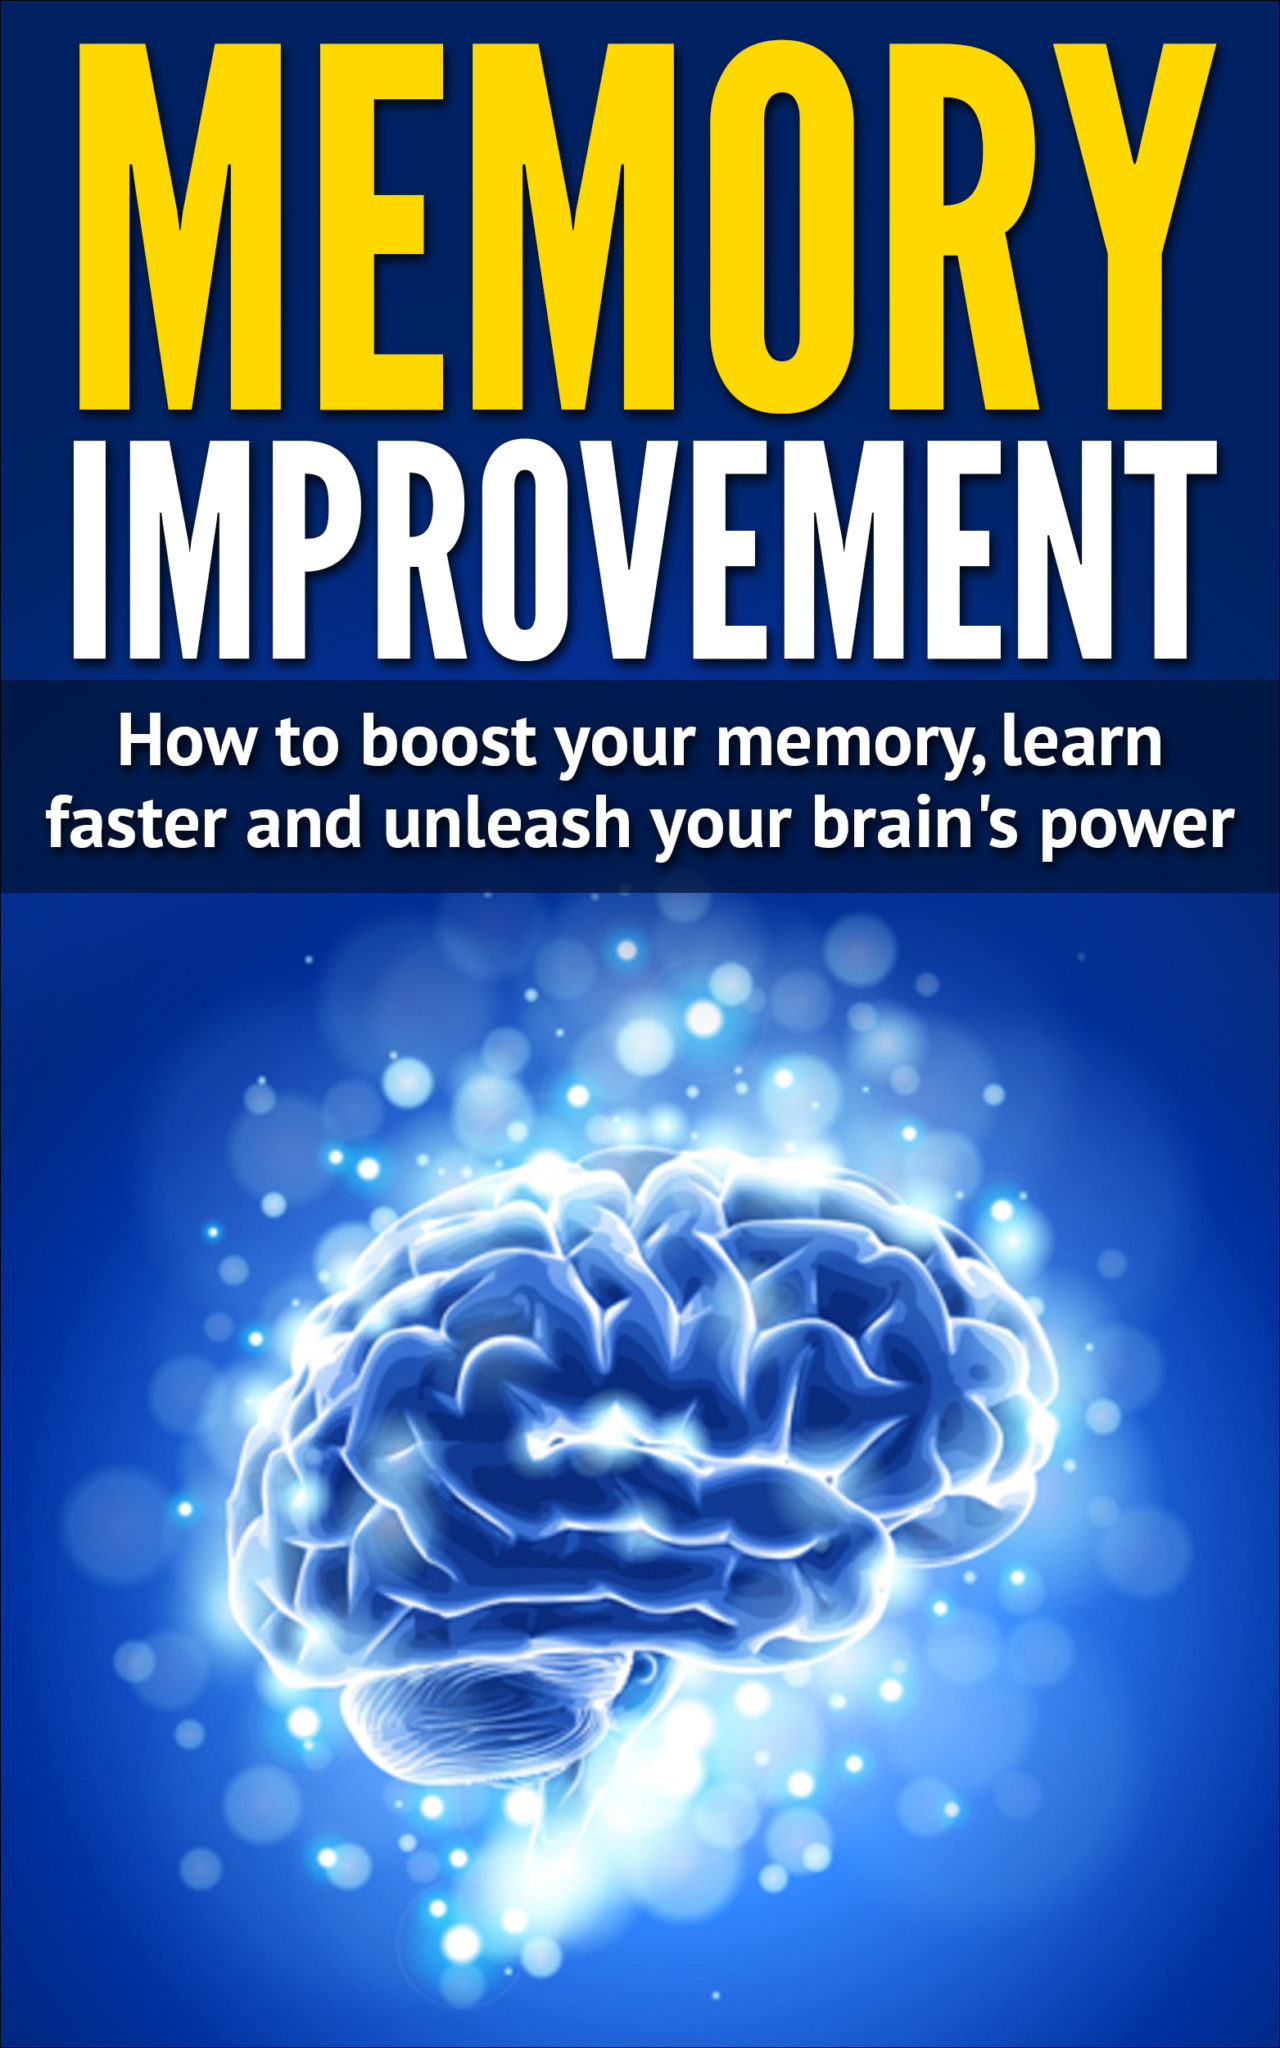 the effects of memory improvement by Memory and memory improvement chp 10 memory disorders study a rare form of amnesia in which the amnesic effects are short-lived, usually on the order of hours.